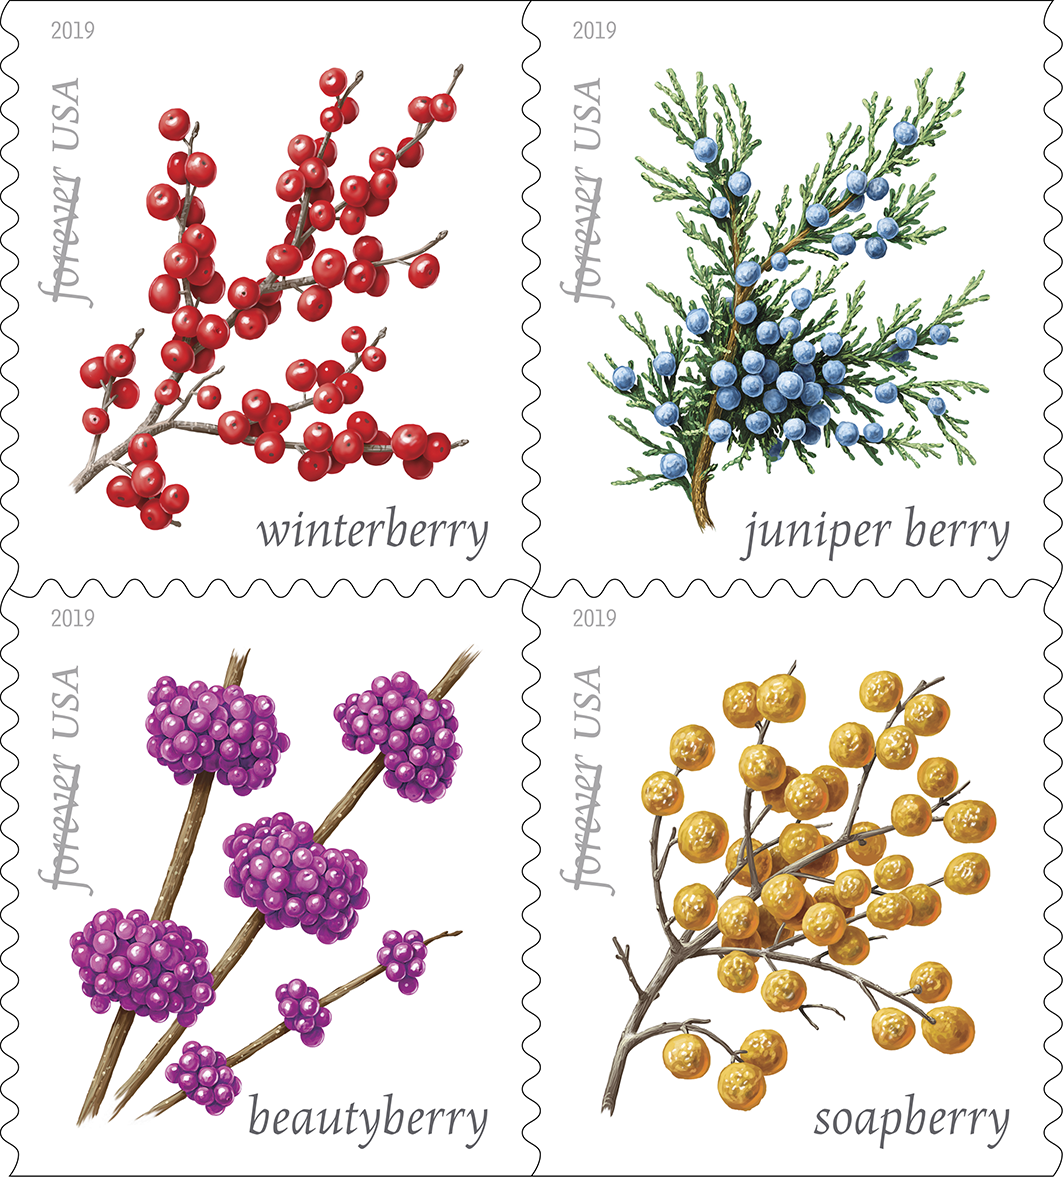 Winter Berries Forever Stamps On Sale Today Nationwide